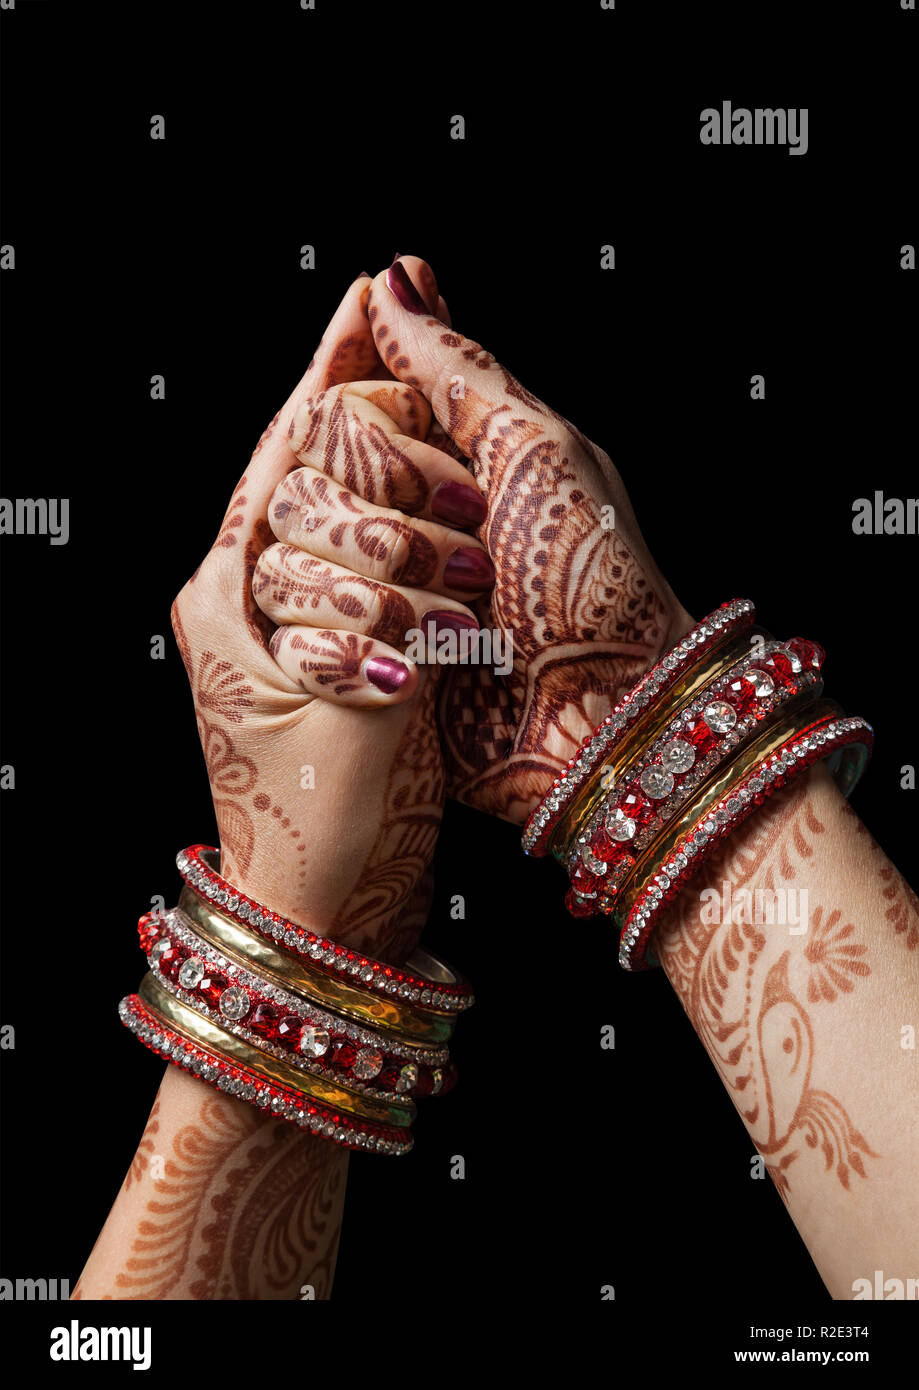 Woman hands with henna in shell mudra on black background - Stock Image